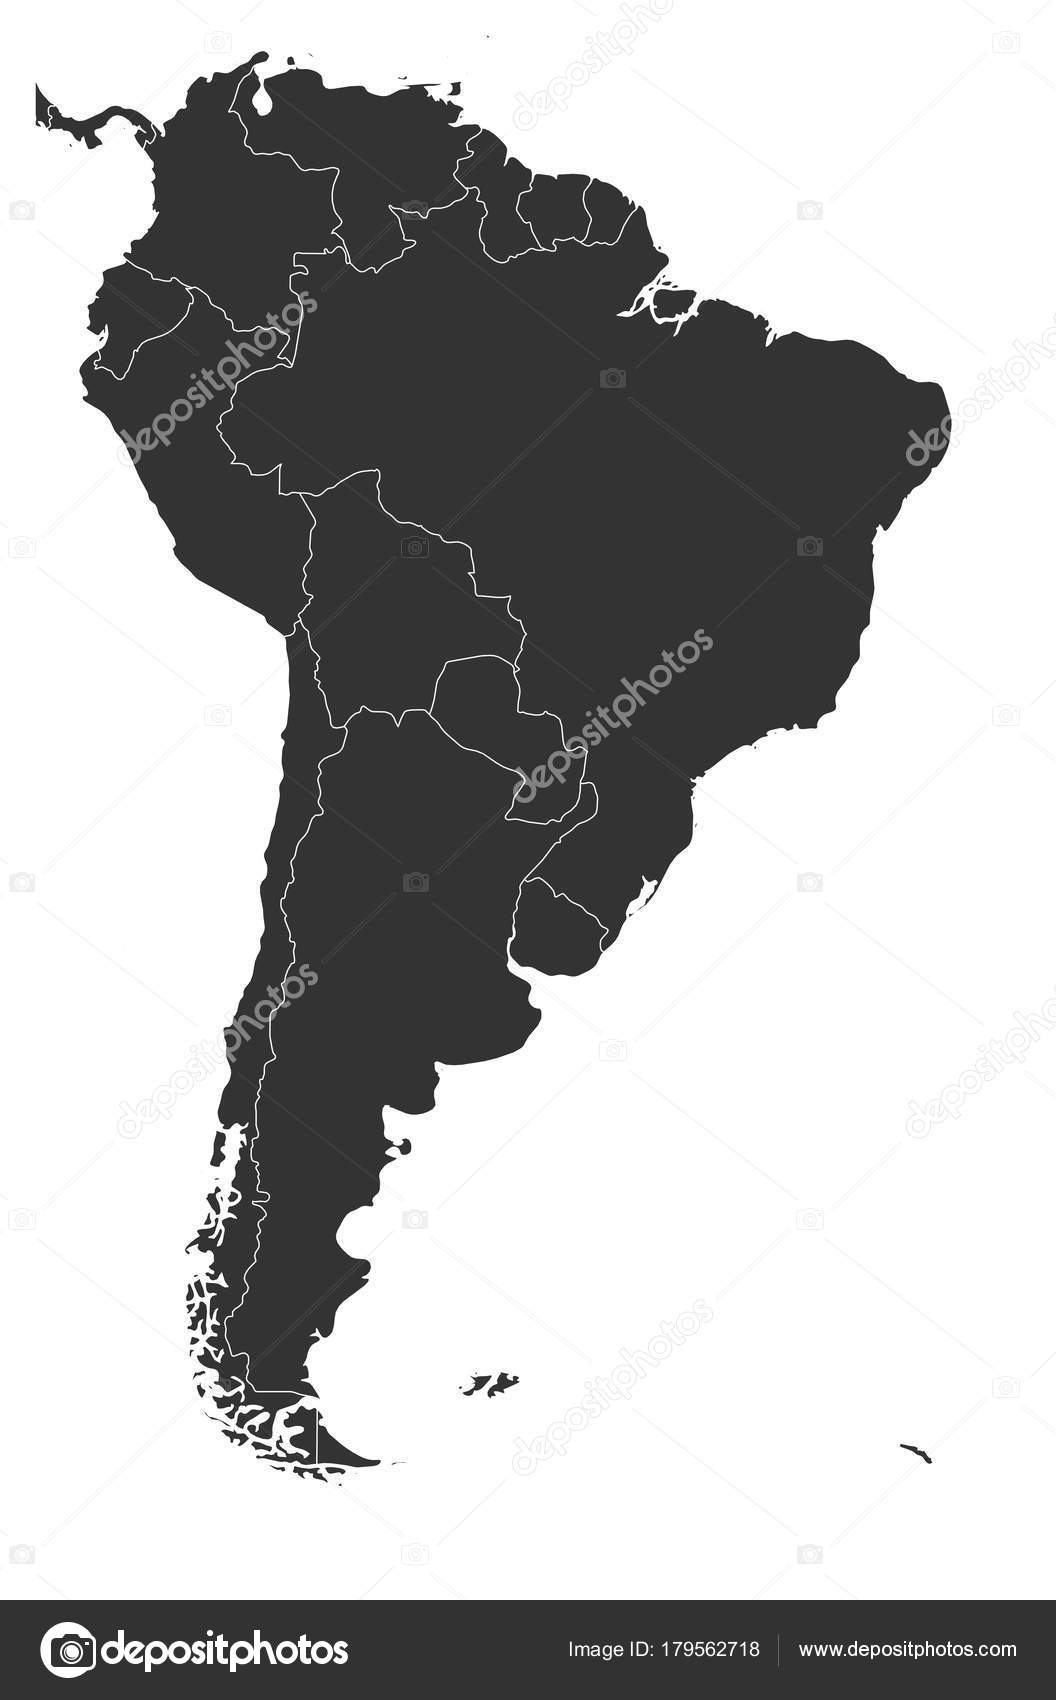 Blank Political Map Of South America Simple Flat Vector Map In Grey